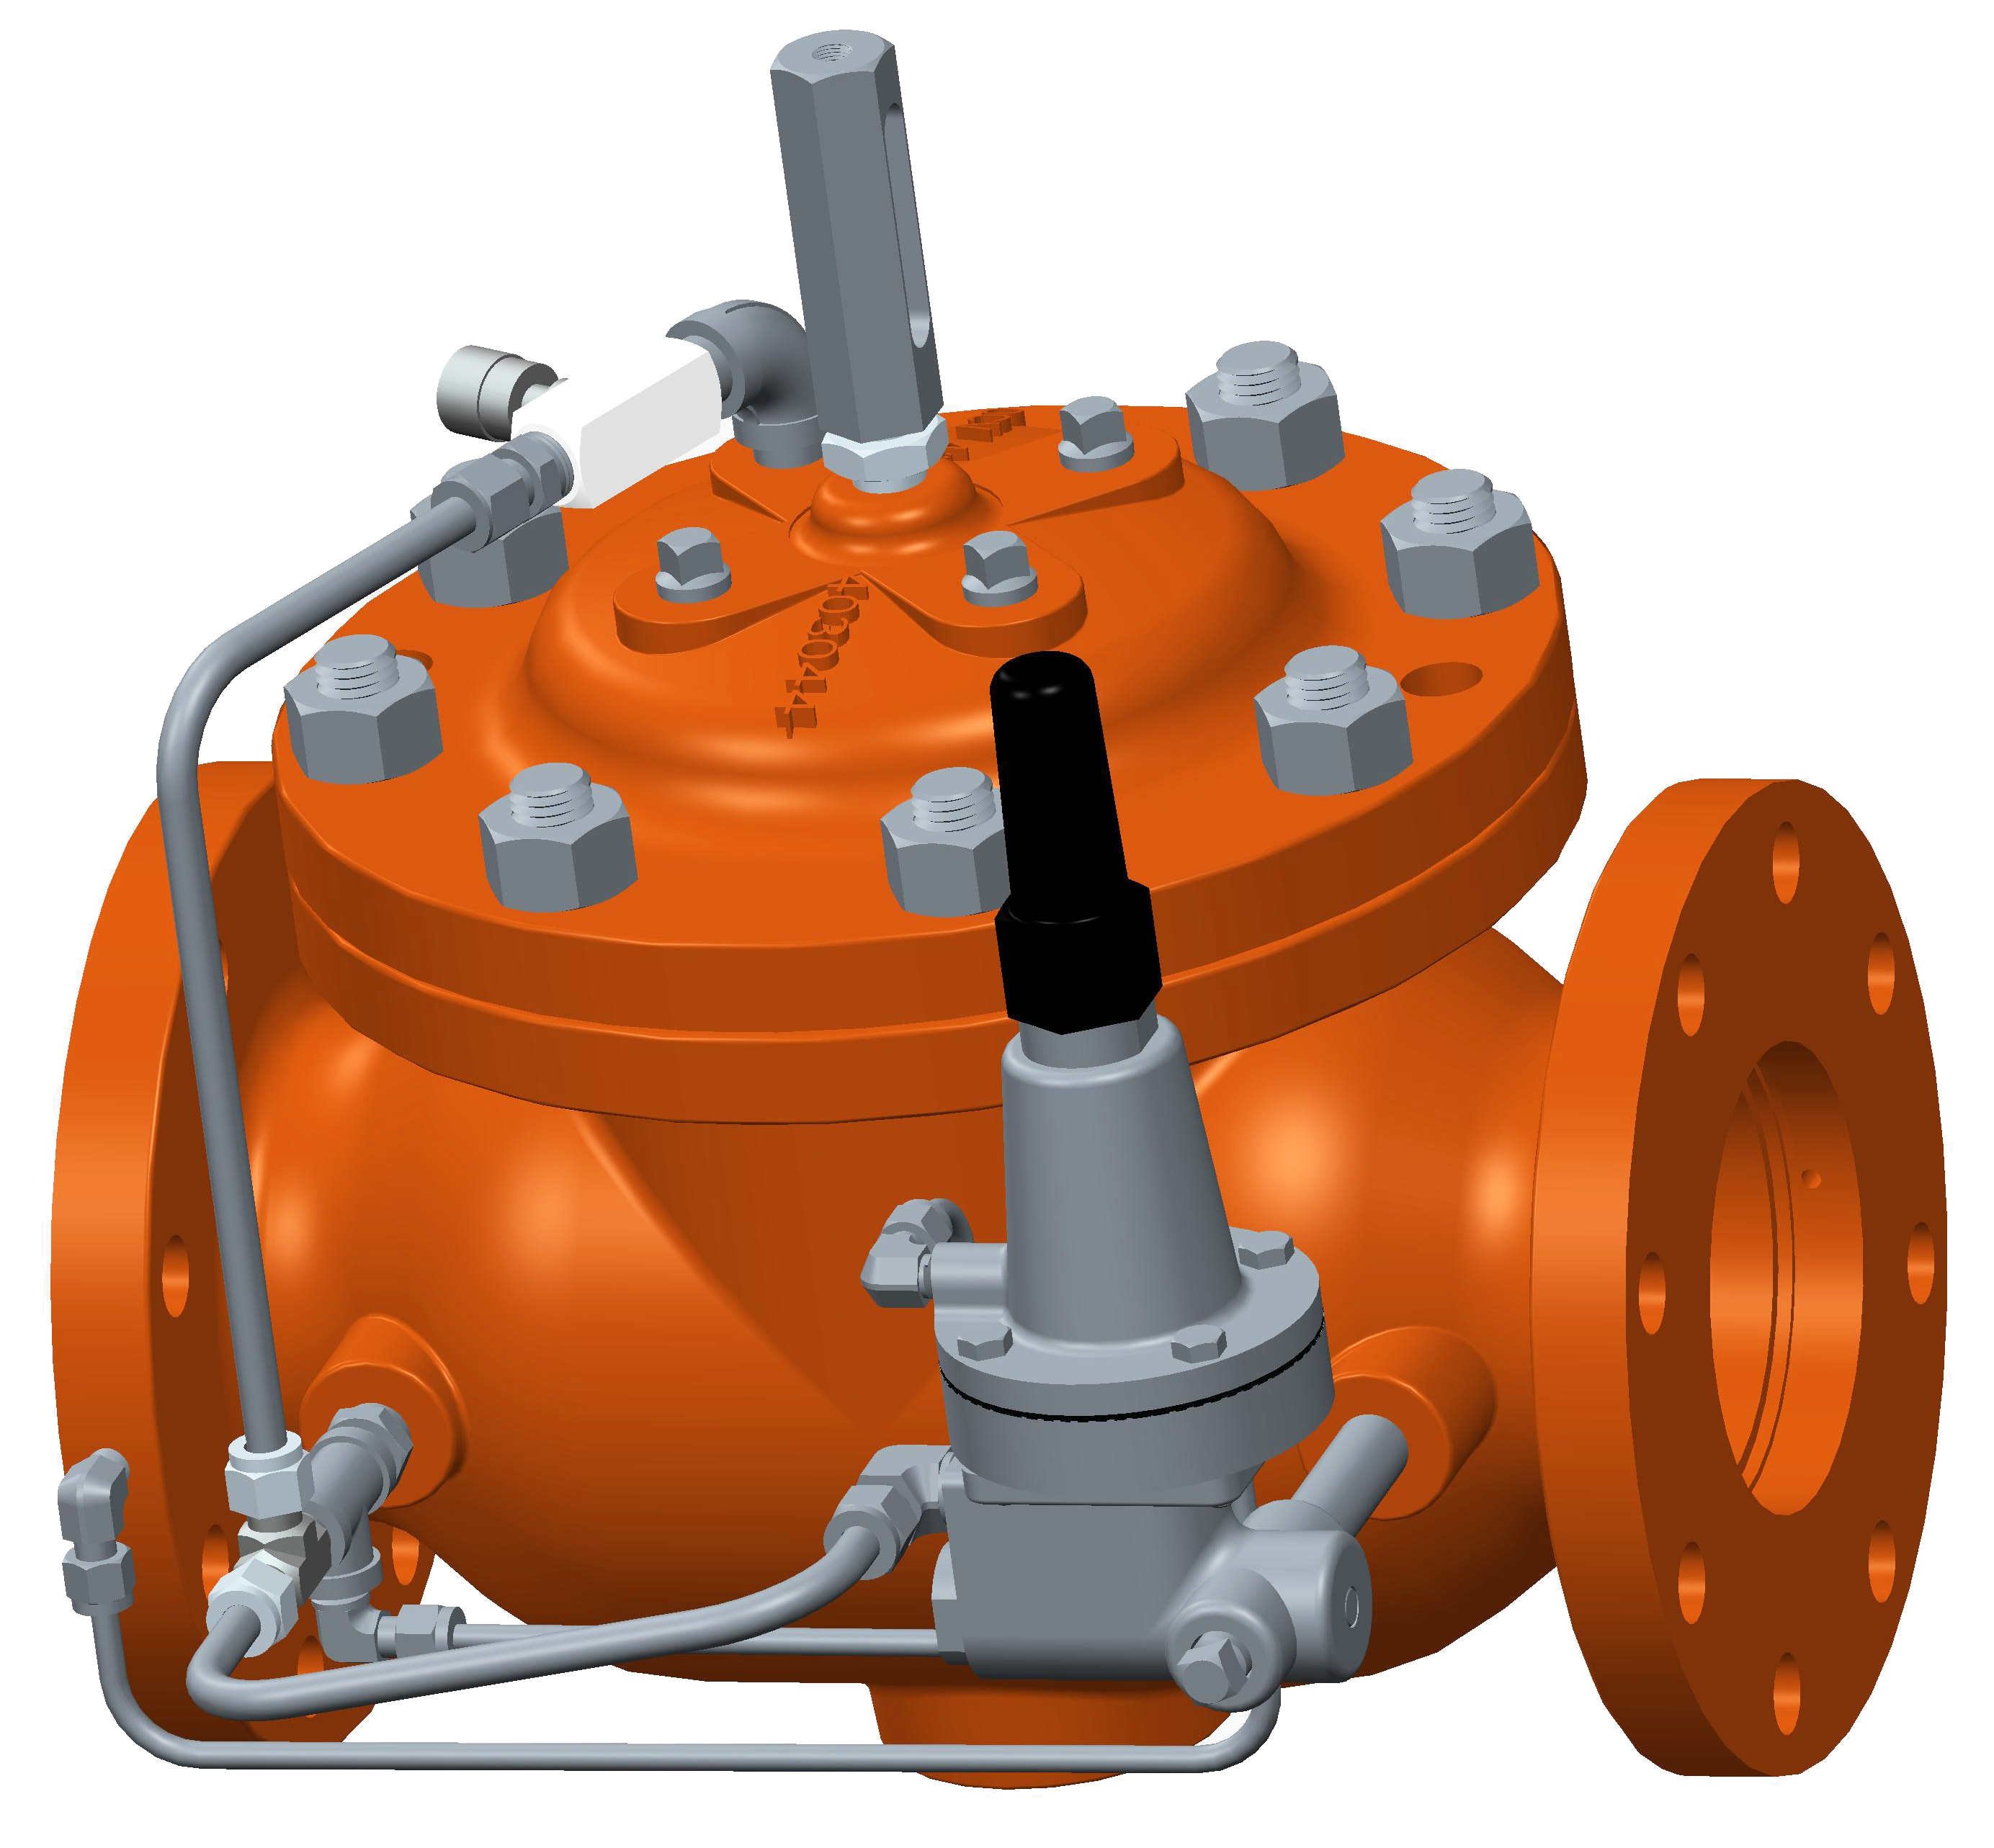 Model 128 Excess Flow Shut-Off Valve